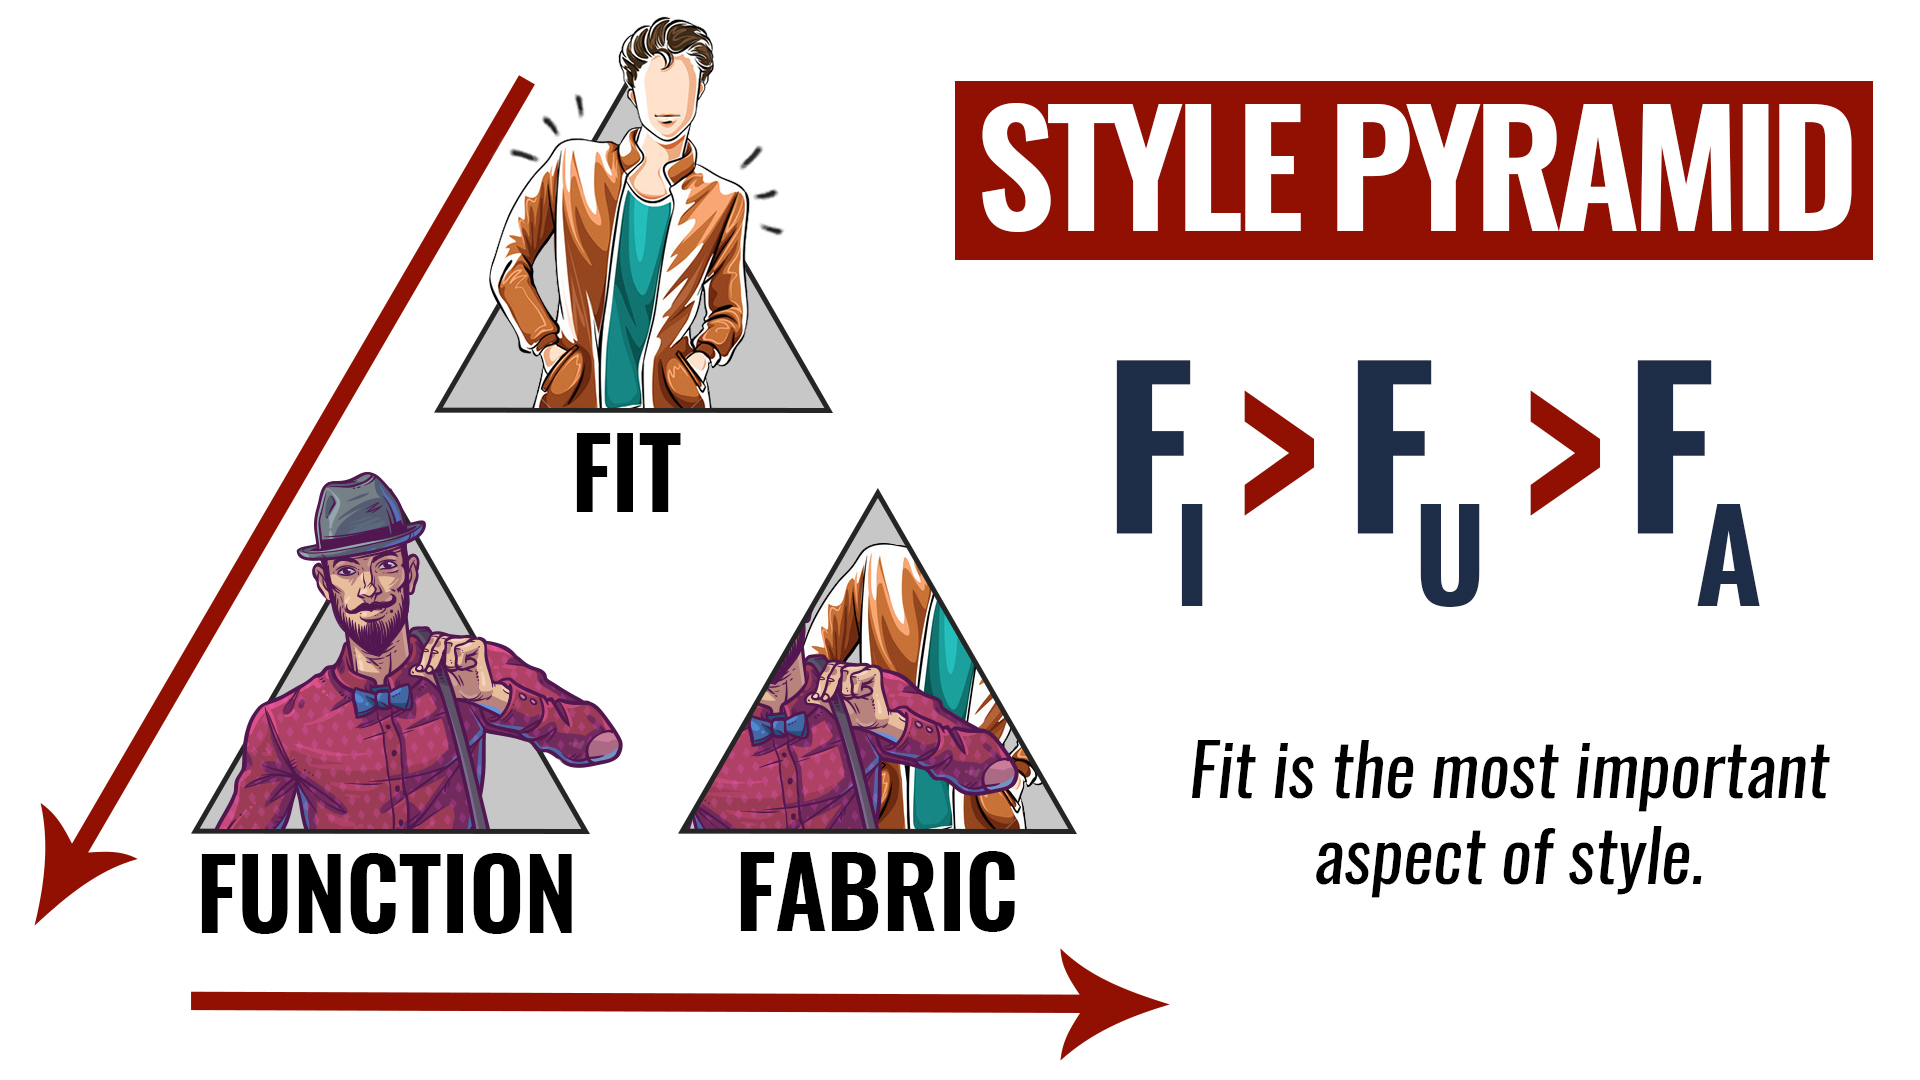 The Style Pyramid